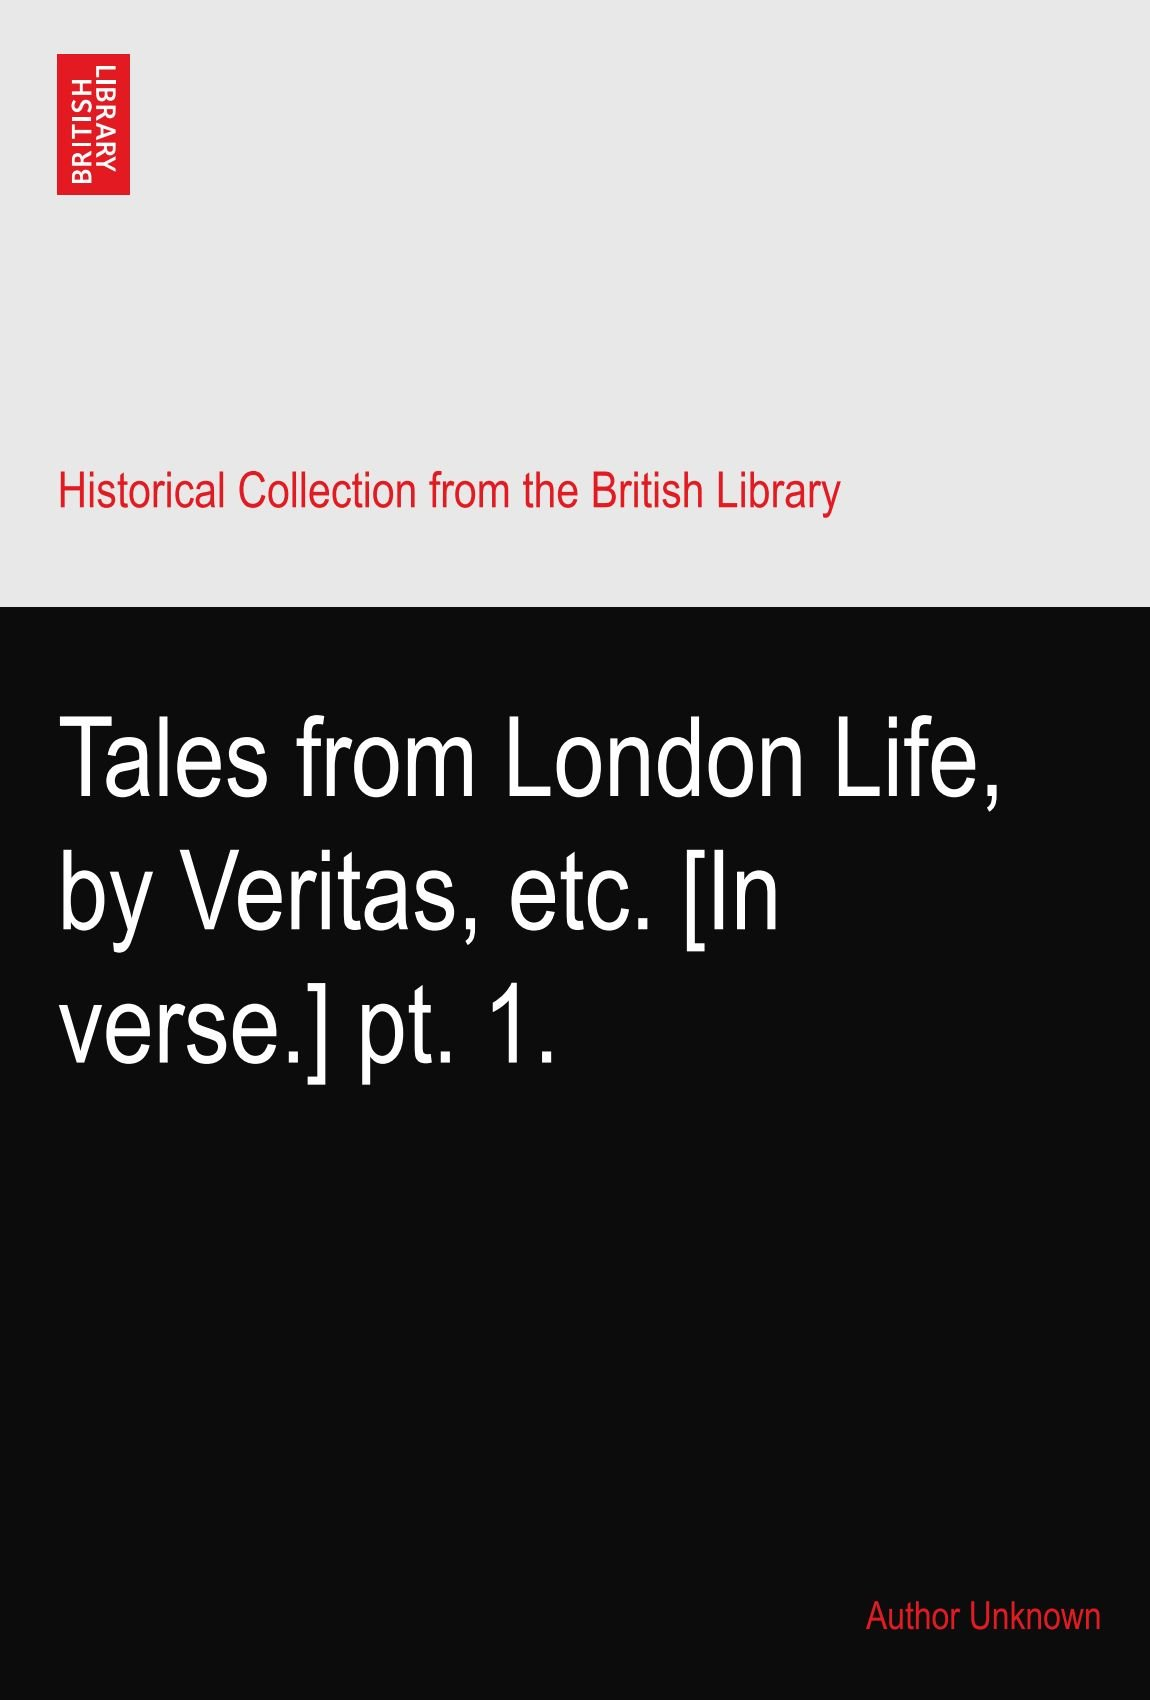 Download Tales from London Life, by Veritas, etc. [In verse.] pt. 1. ebook